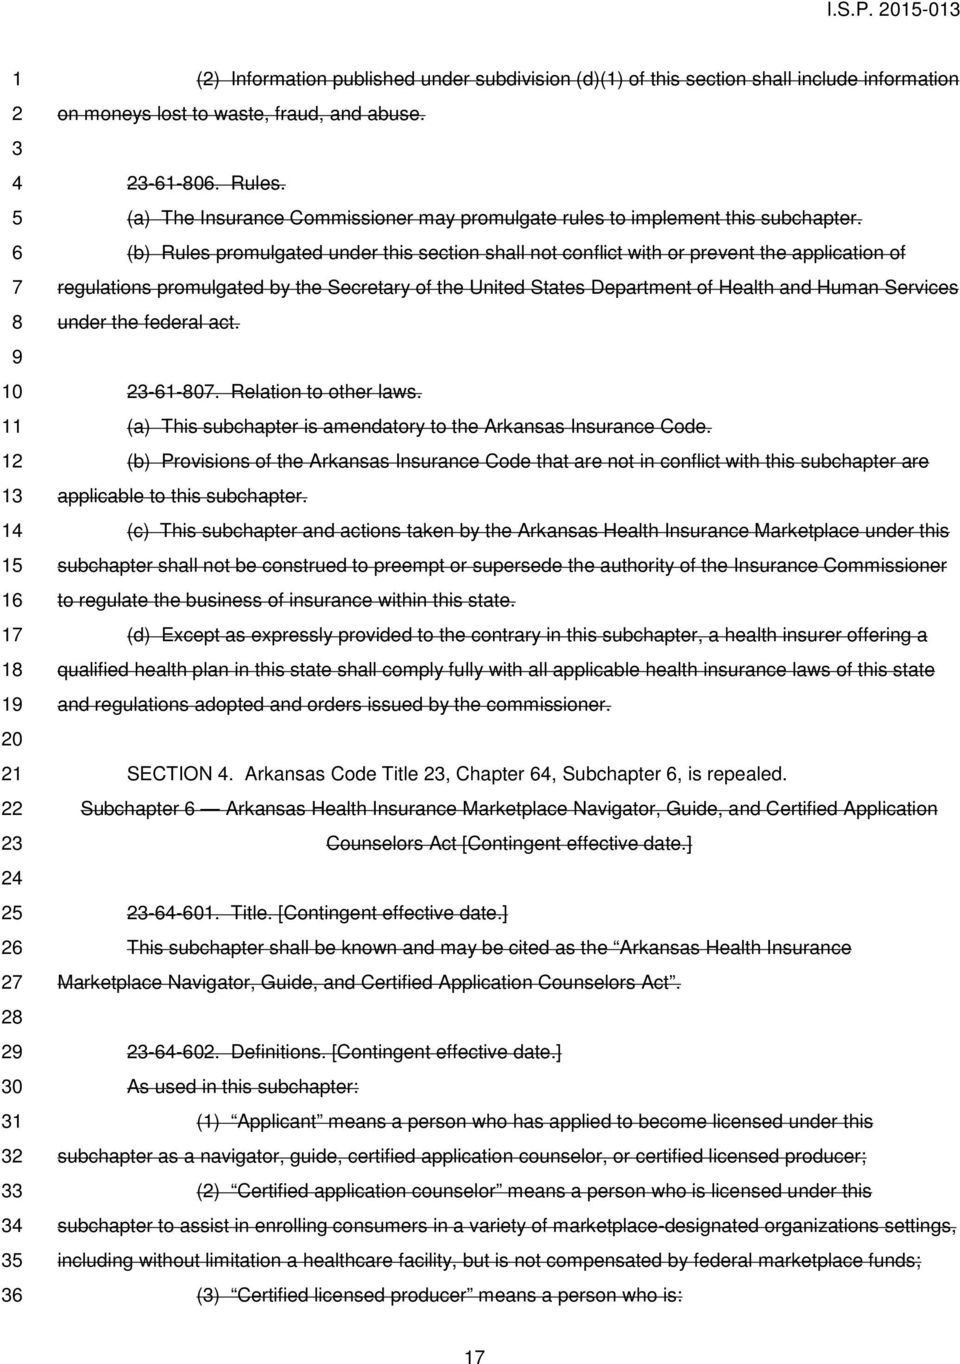 (b) Rules promulgated under this section shall not conflict with or prevent the application of regulations promulgated by the Secretary of the United States Department of Health and Human Services